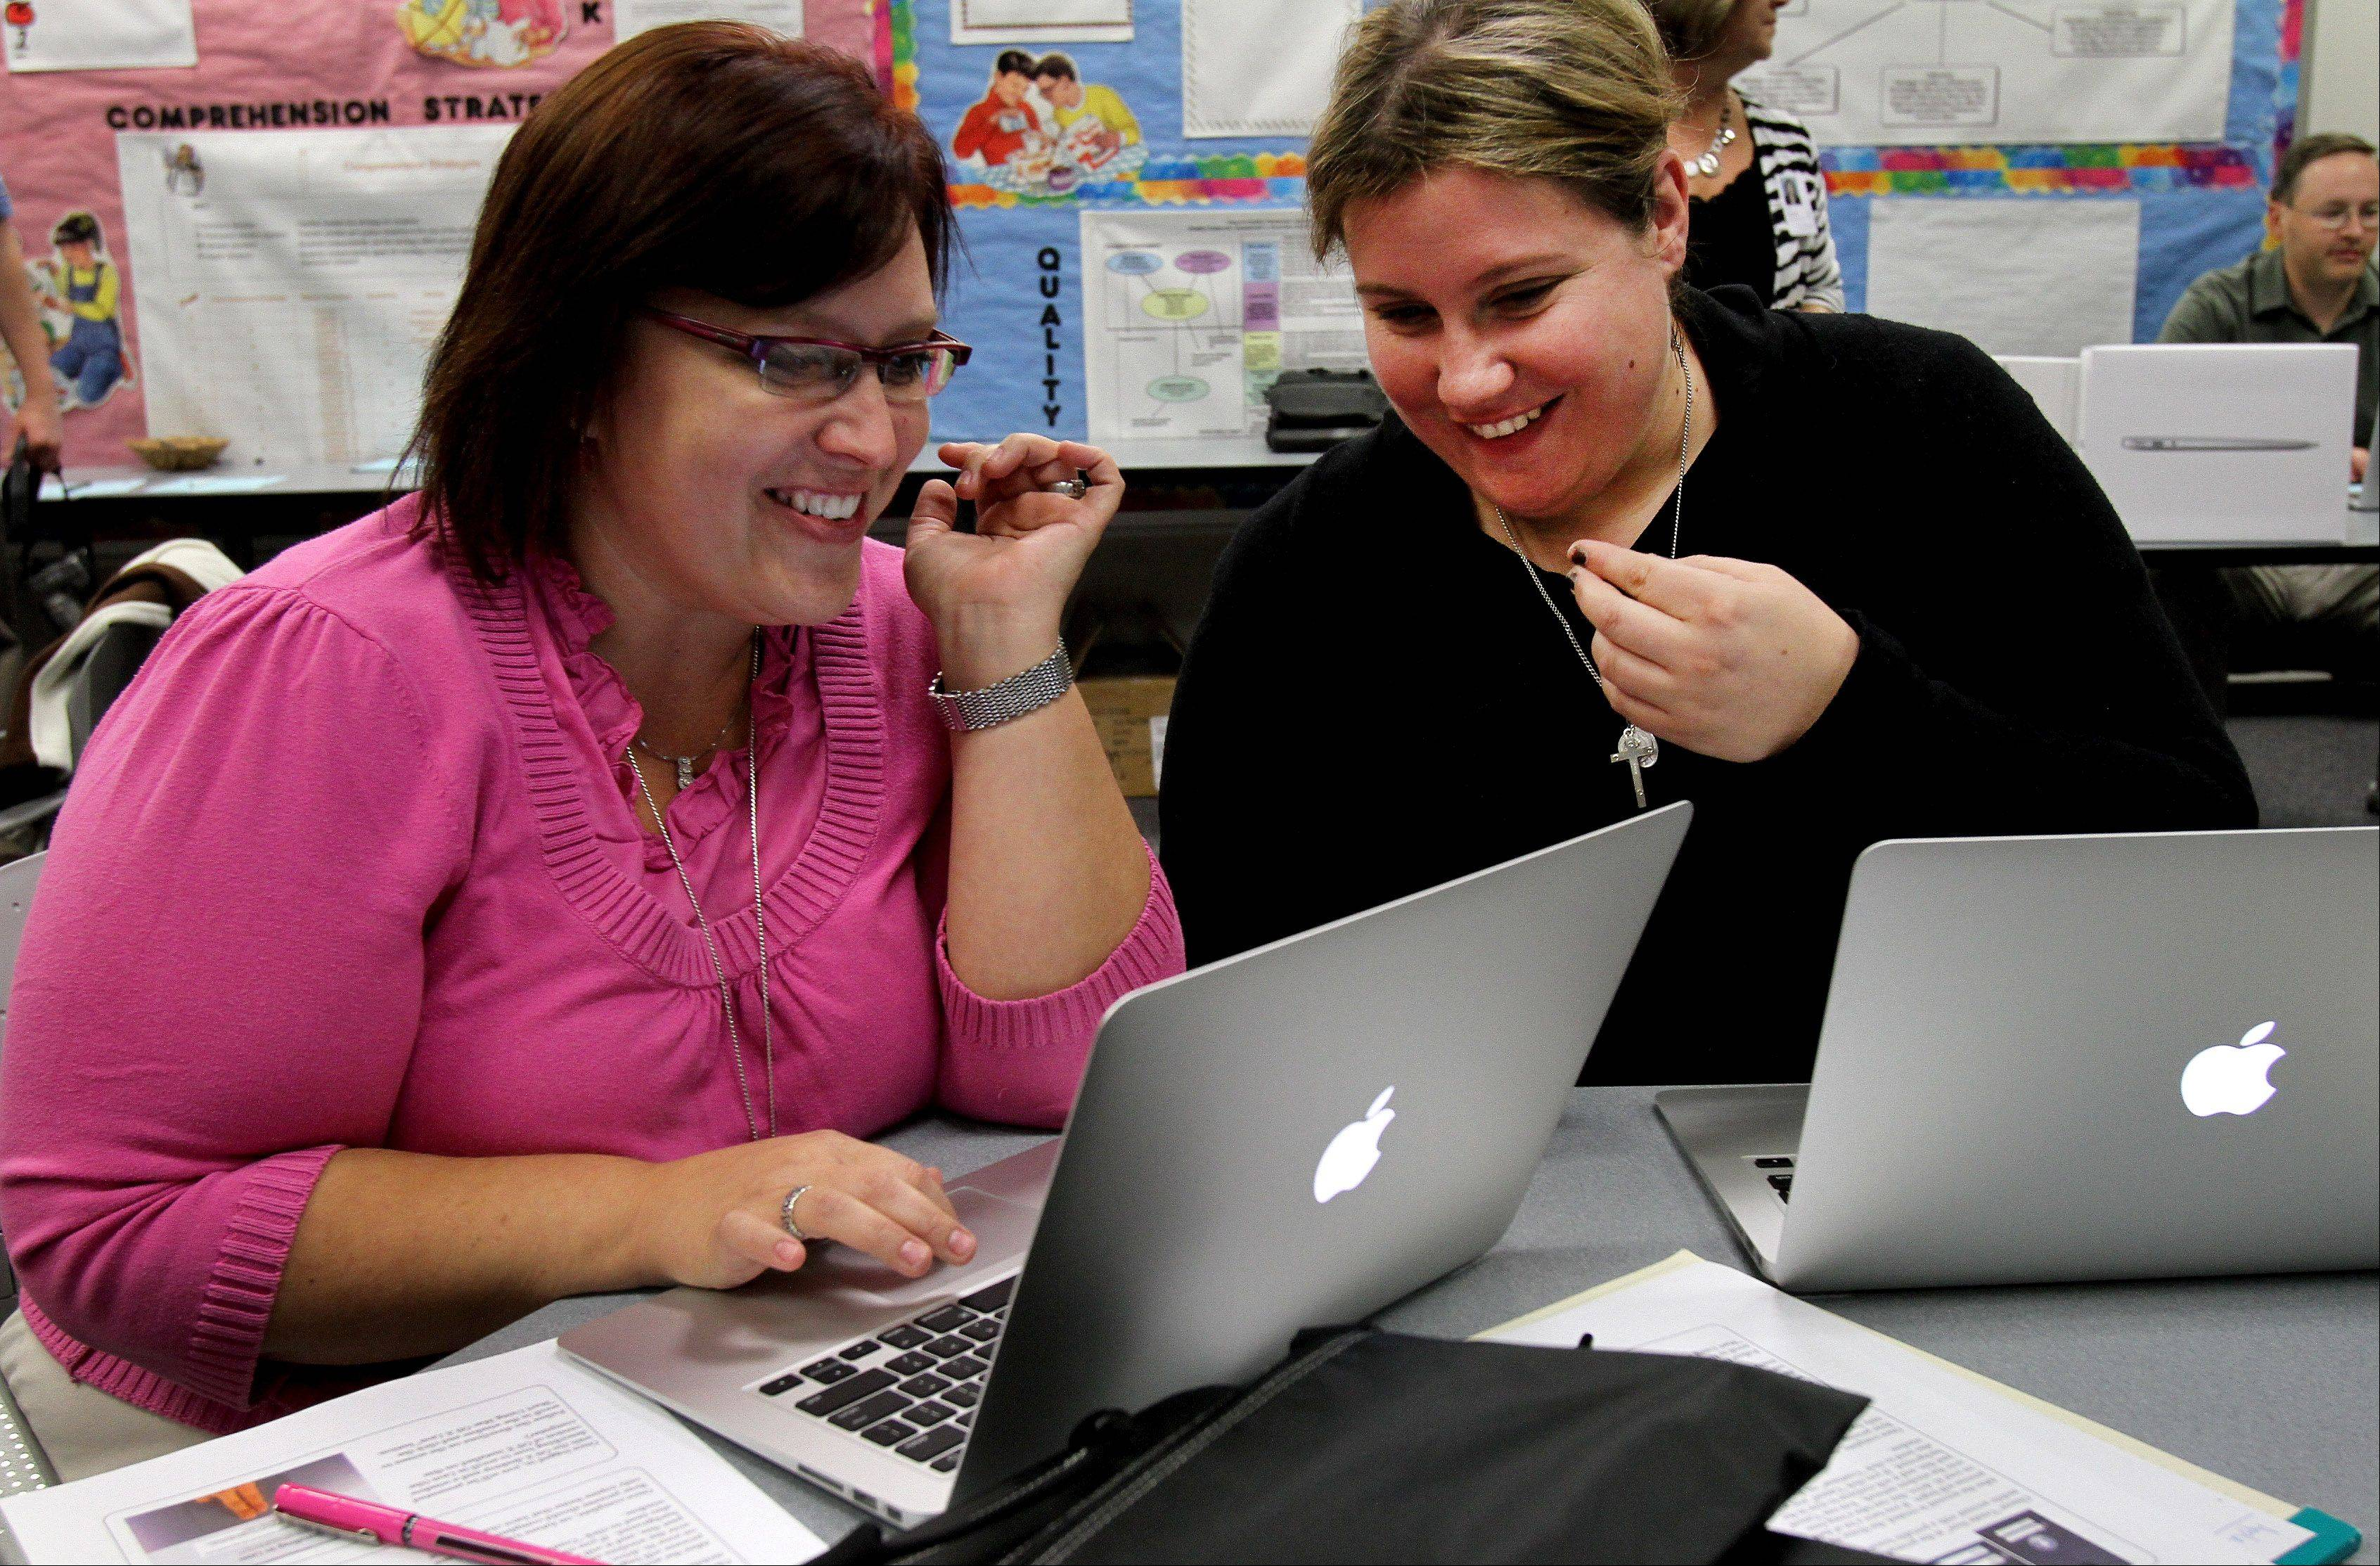 District 93 teachers get Apples to start school year